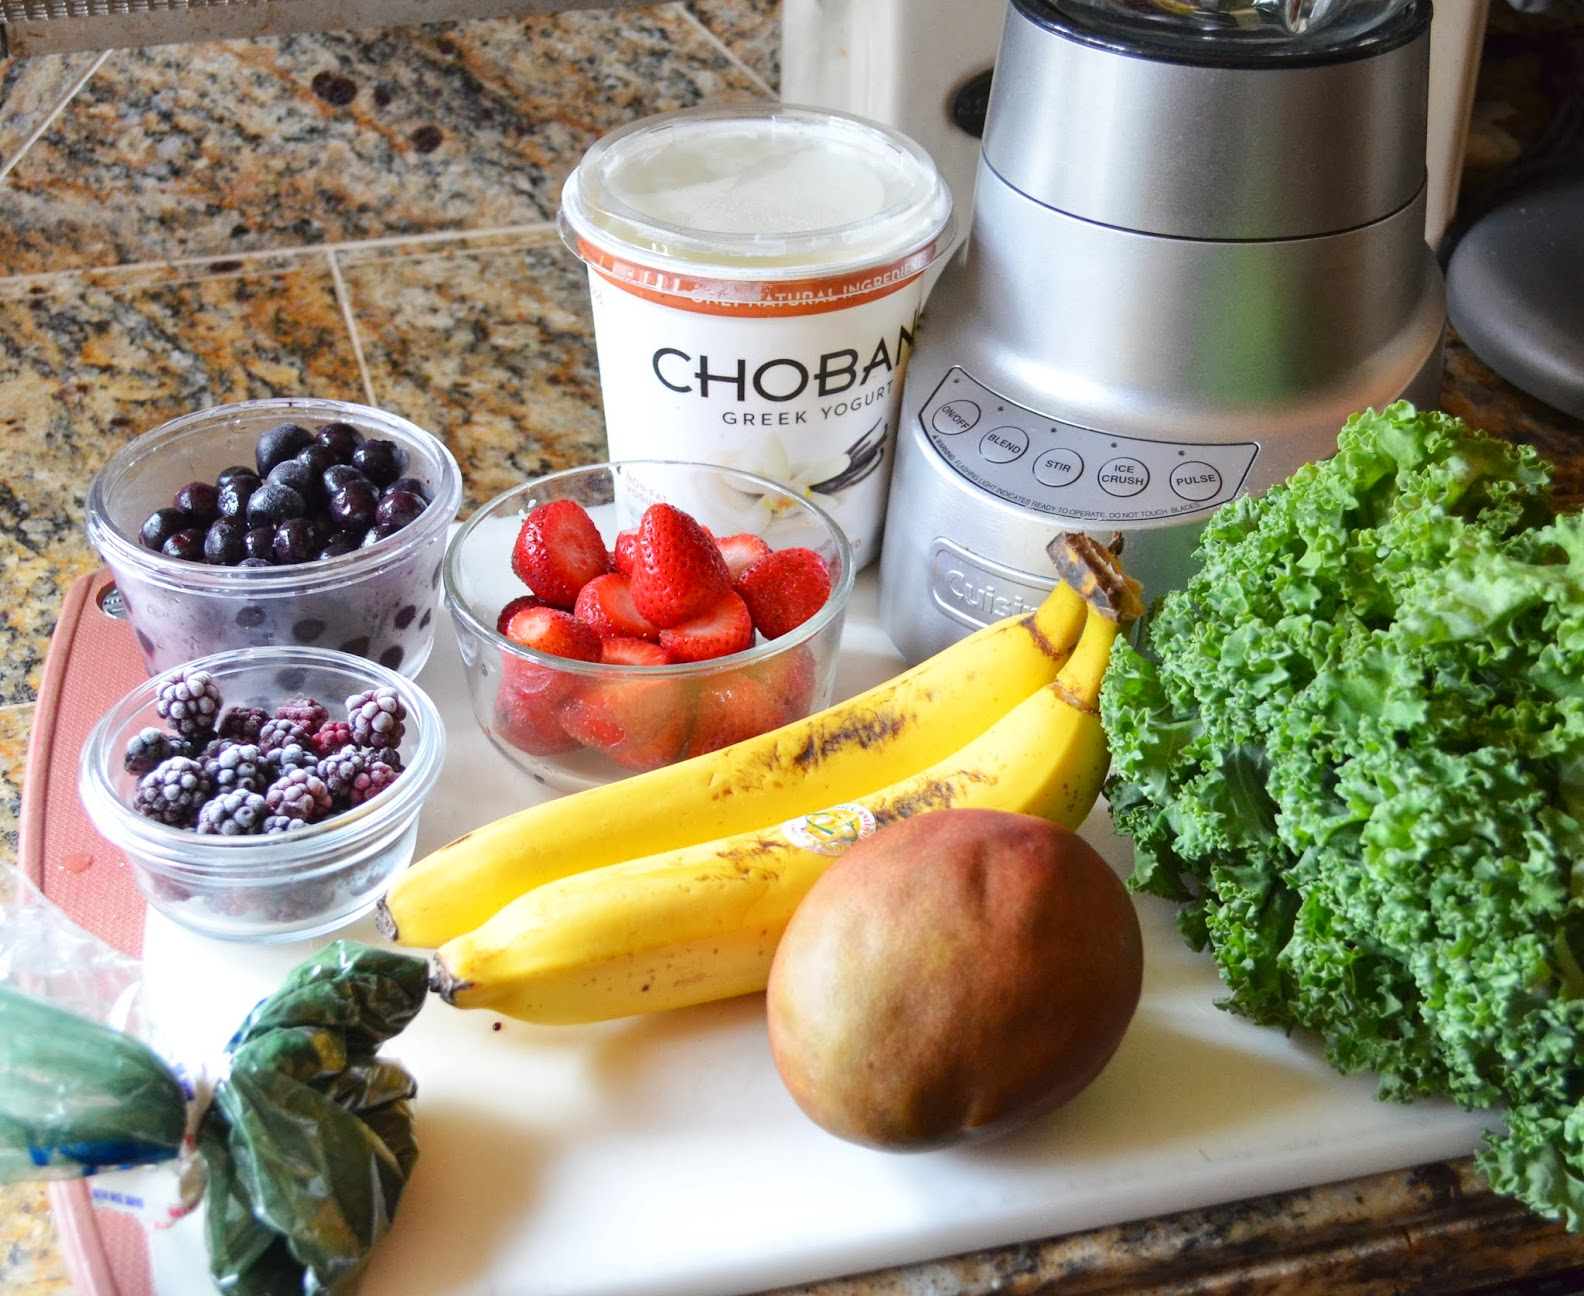 Purple-Antioxidant-Super-Smoothie-Yogurt-Blackberries-Blueberries-Banana-Mango-Kale.jpg